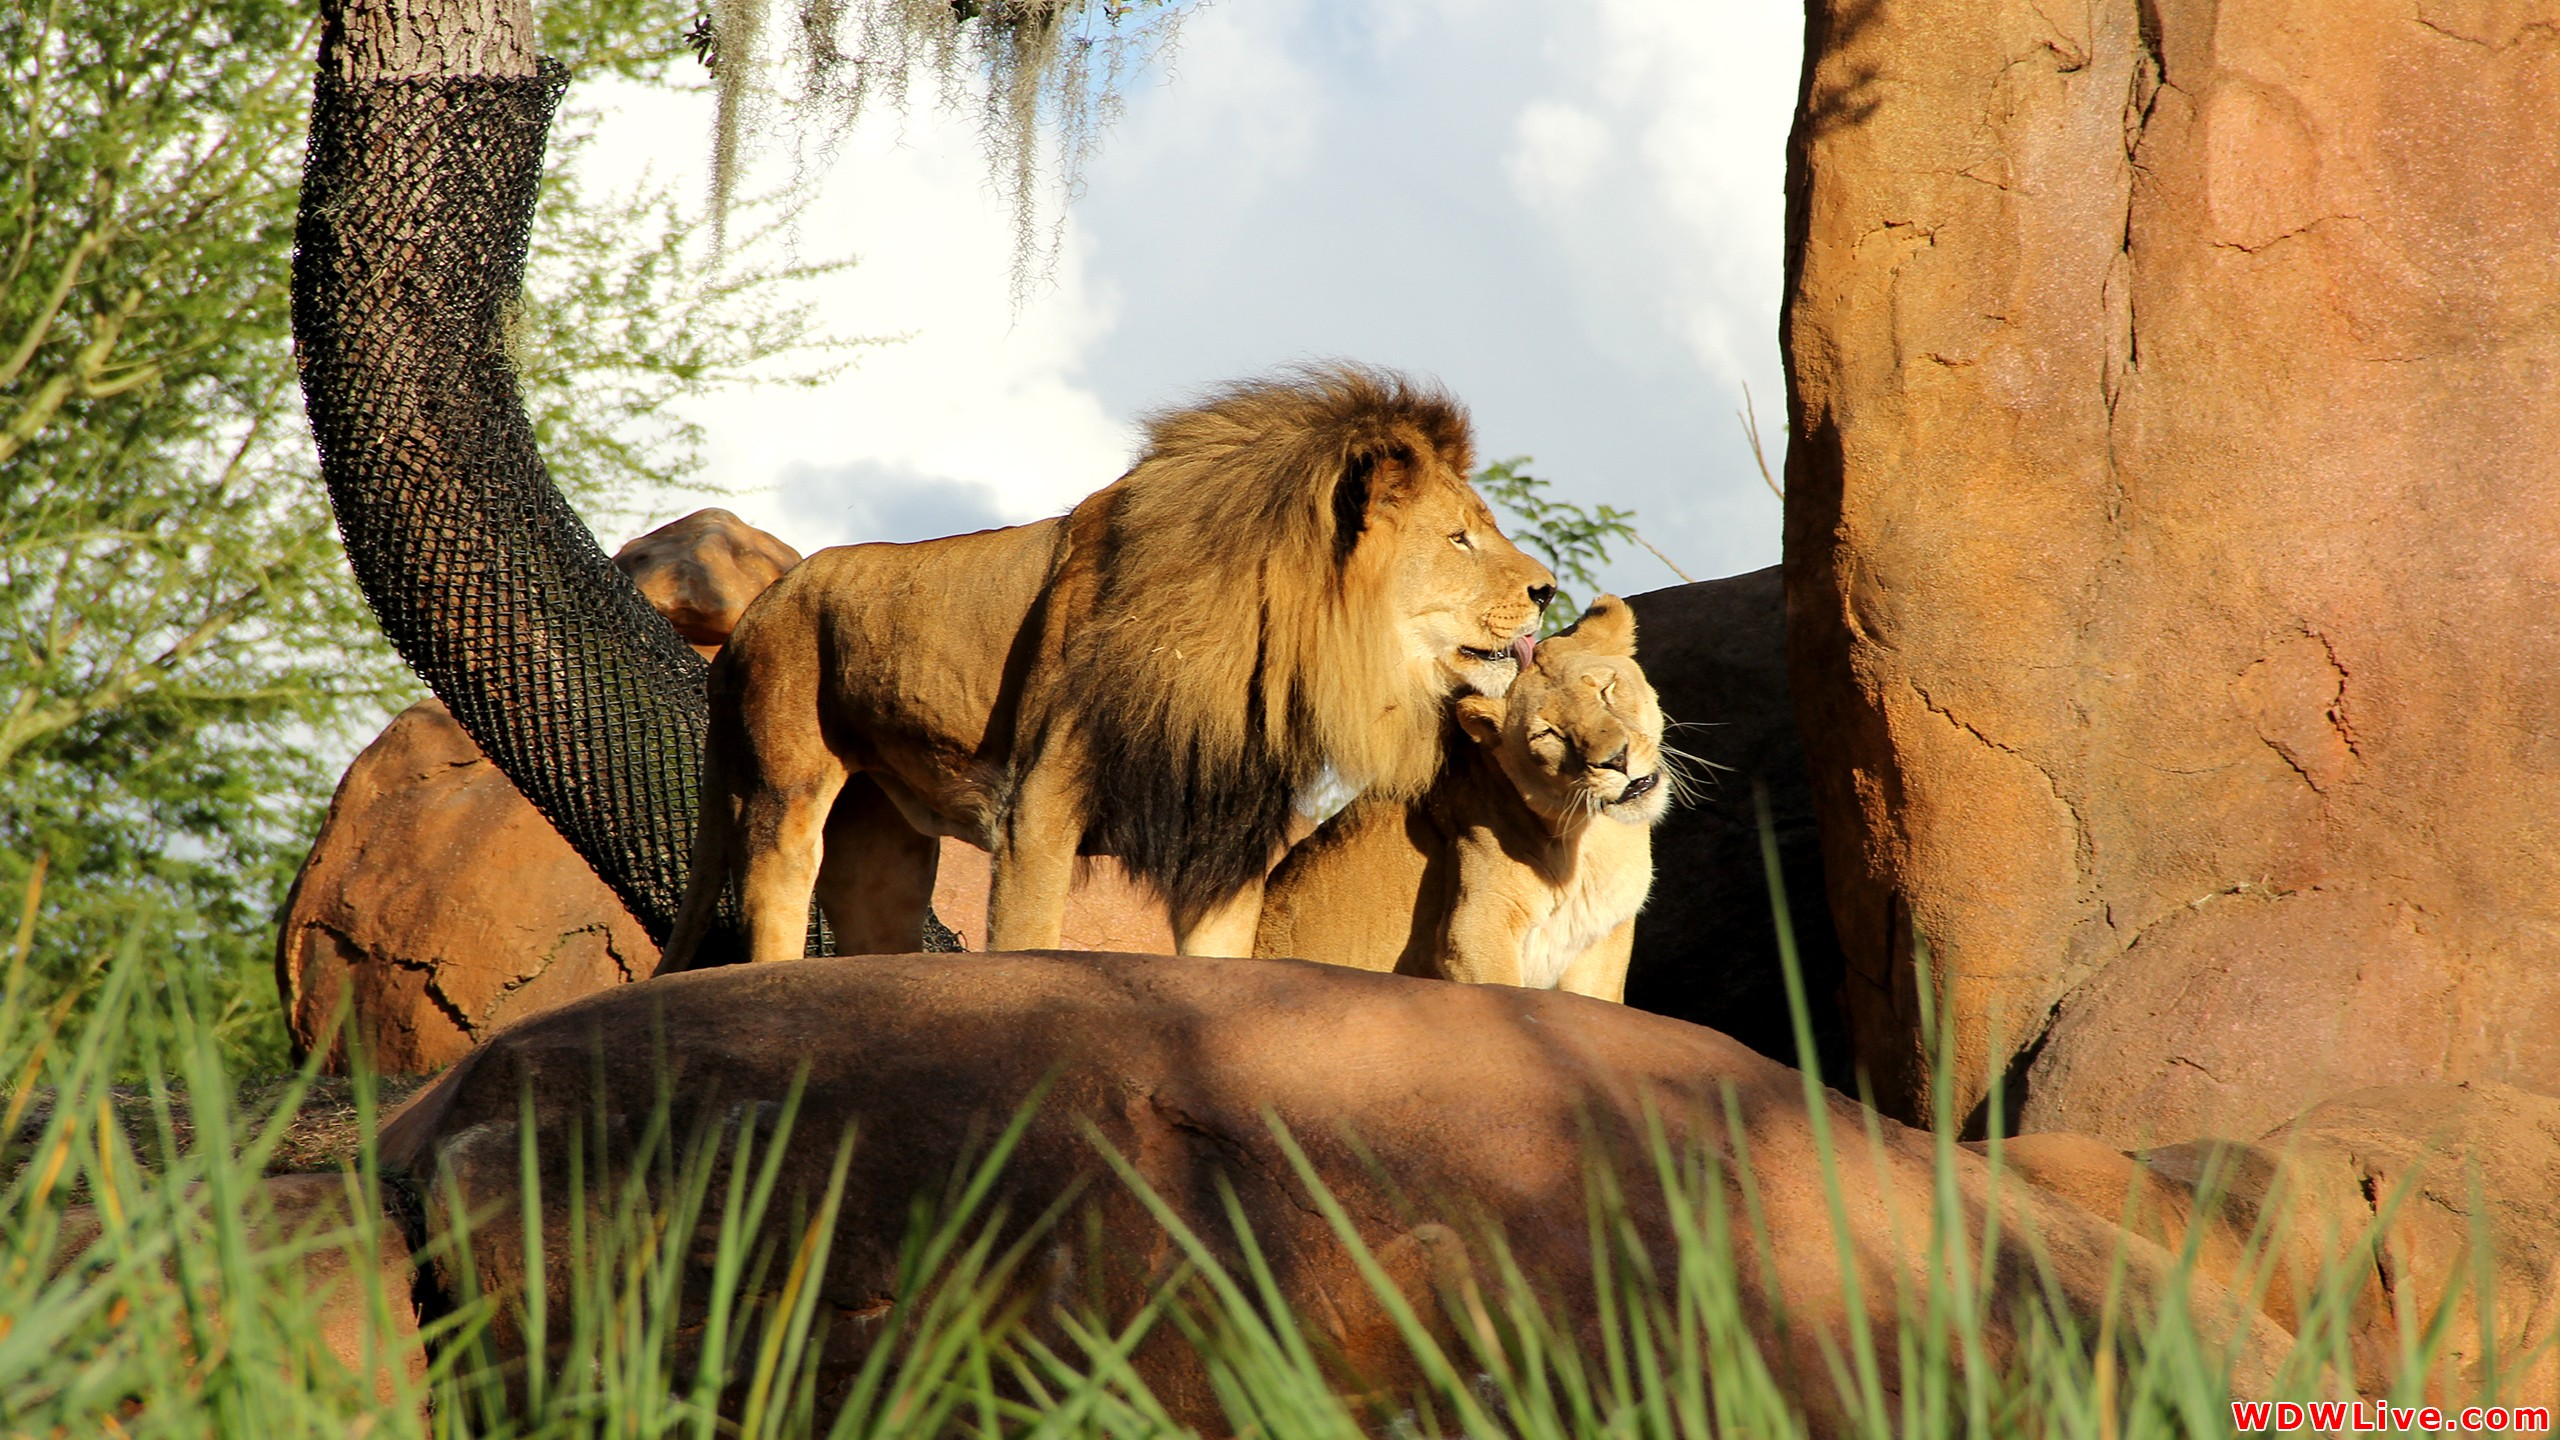 Lion And Lioness Kissing Animal Wallpaper Hd Background - Disney Animal Kingdom Lion , HD Wallpaper & Backgrounds